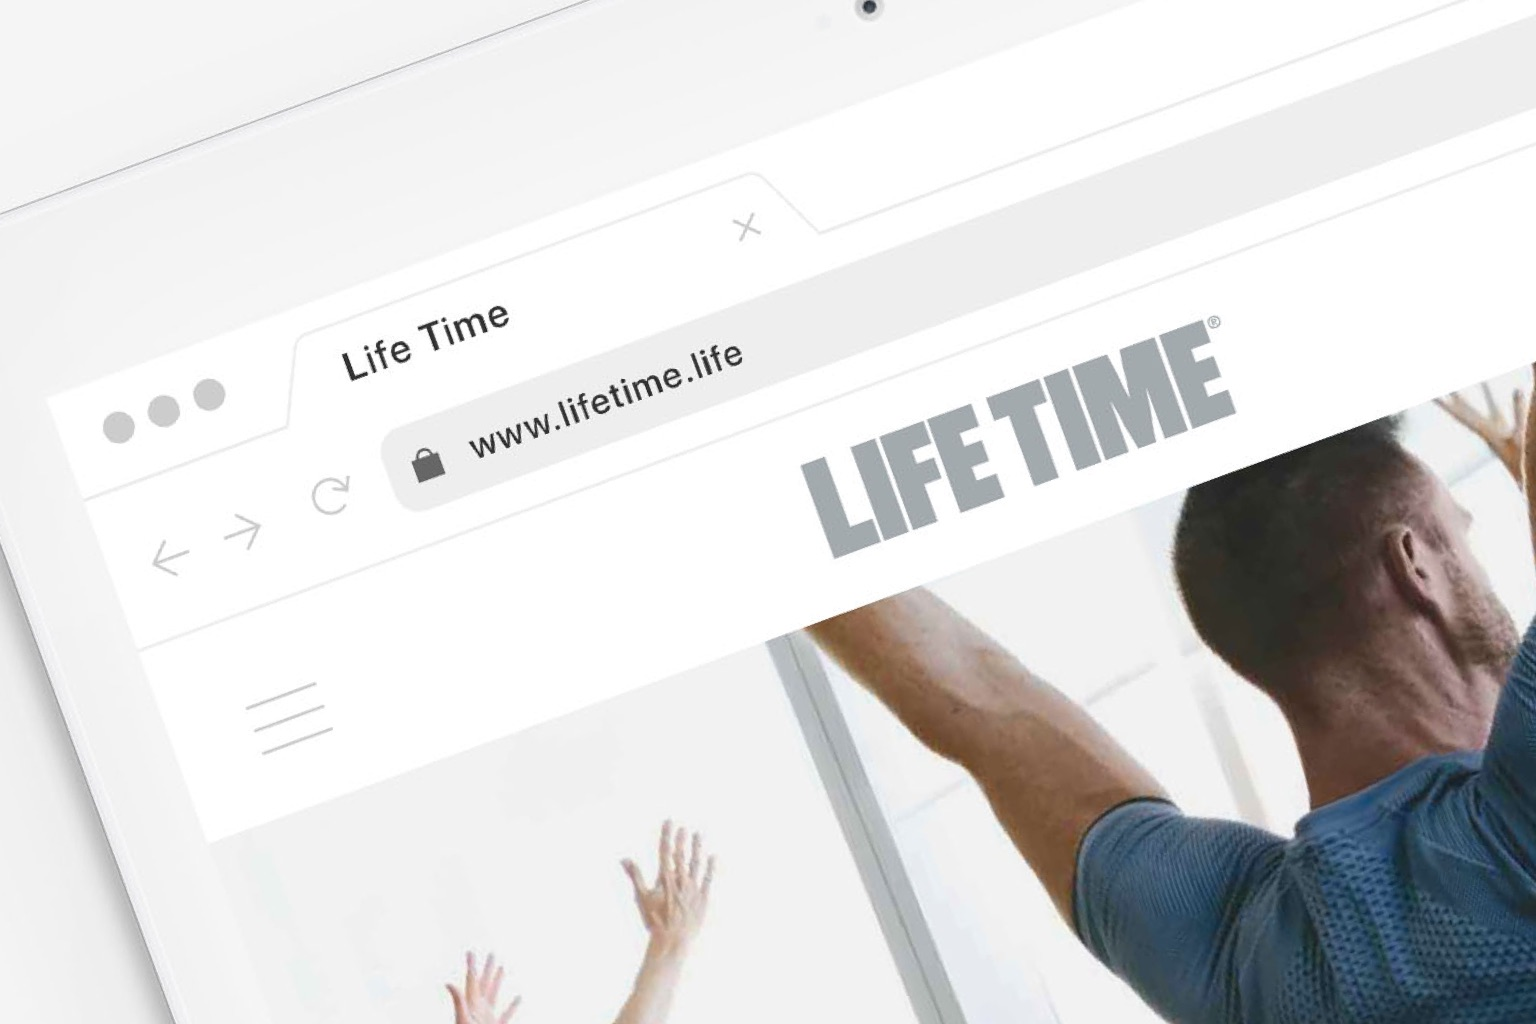 An iPad showing the Life Time website